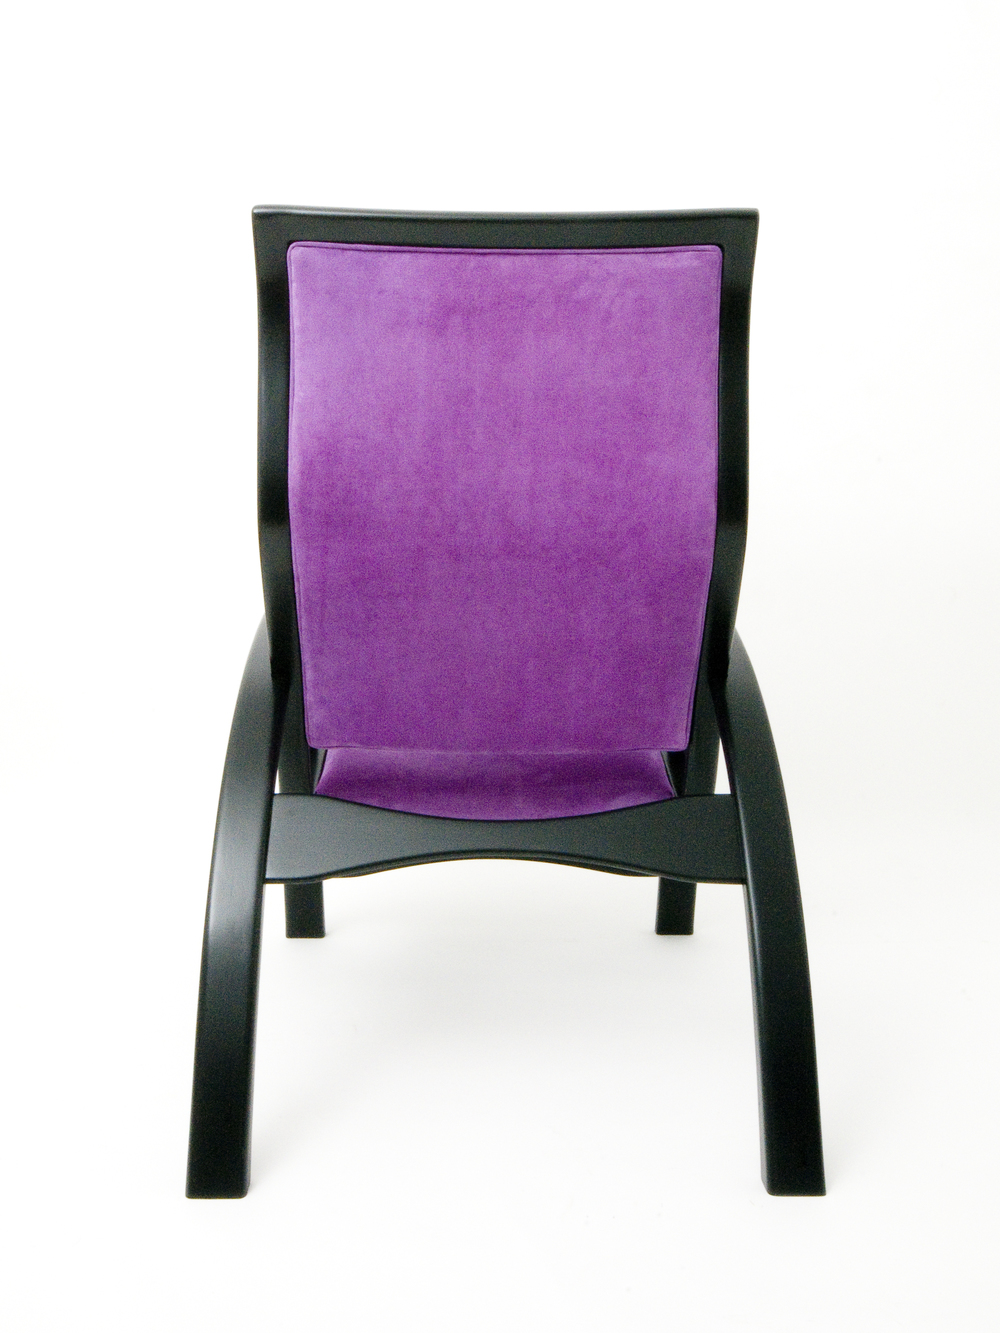 Crown royal chair1.jpg